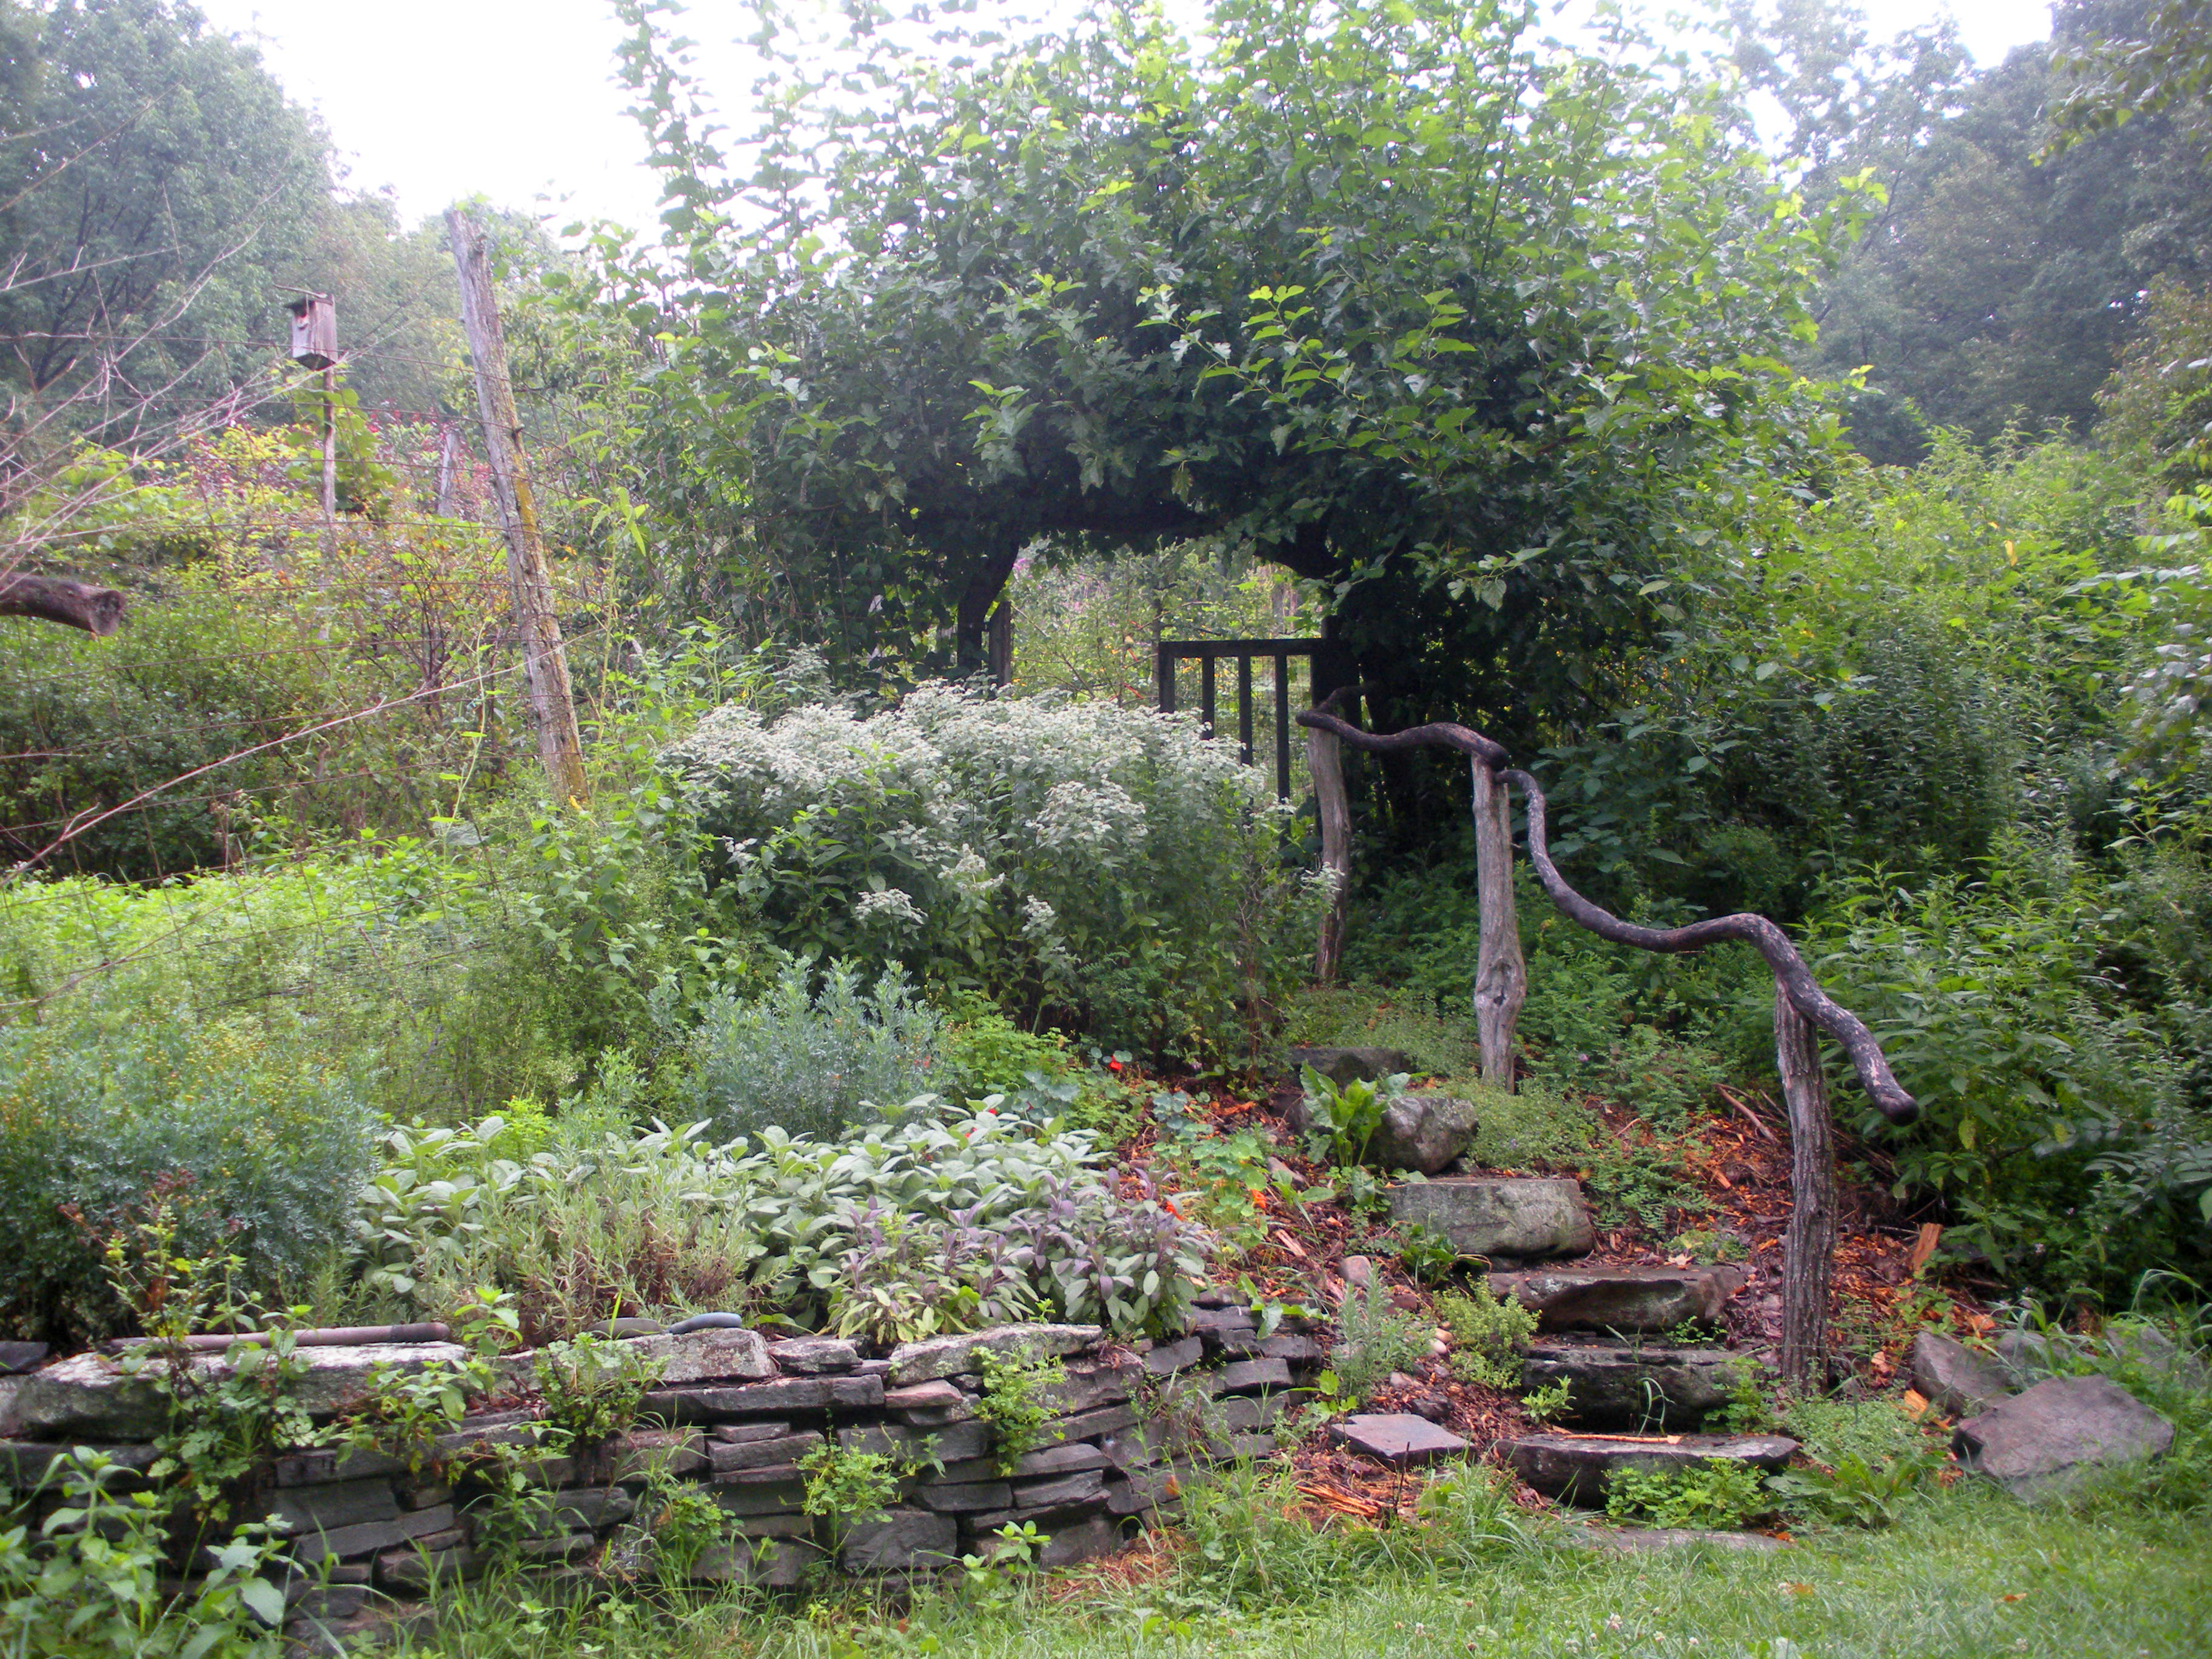 Growing Fruit at Home - Starting a Food Forest | Ecologia ...